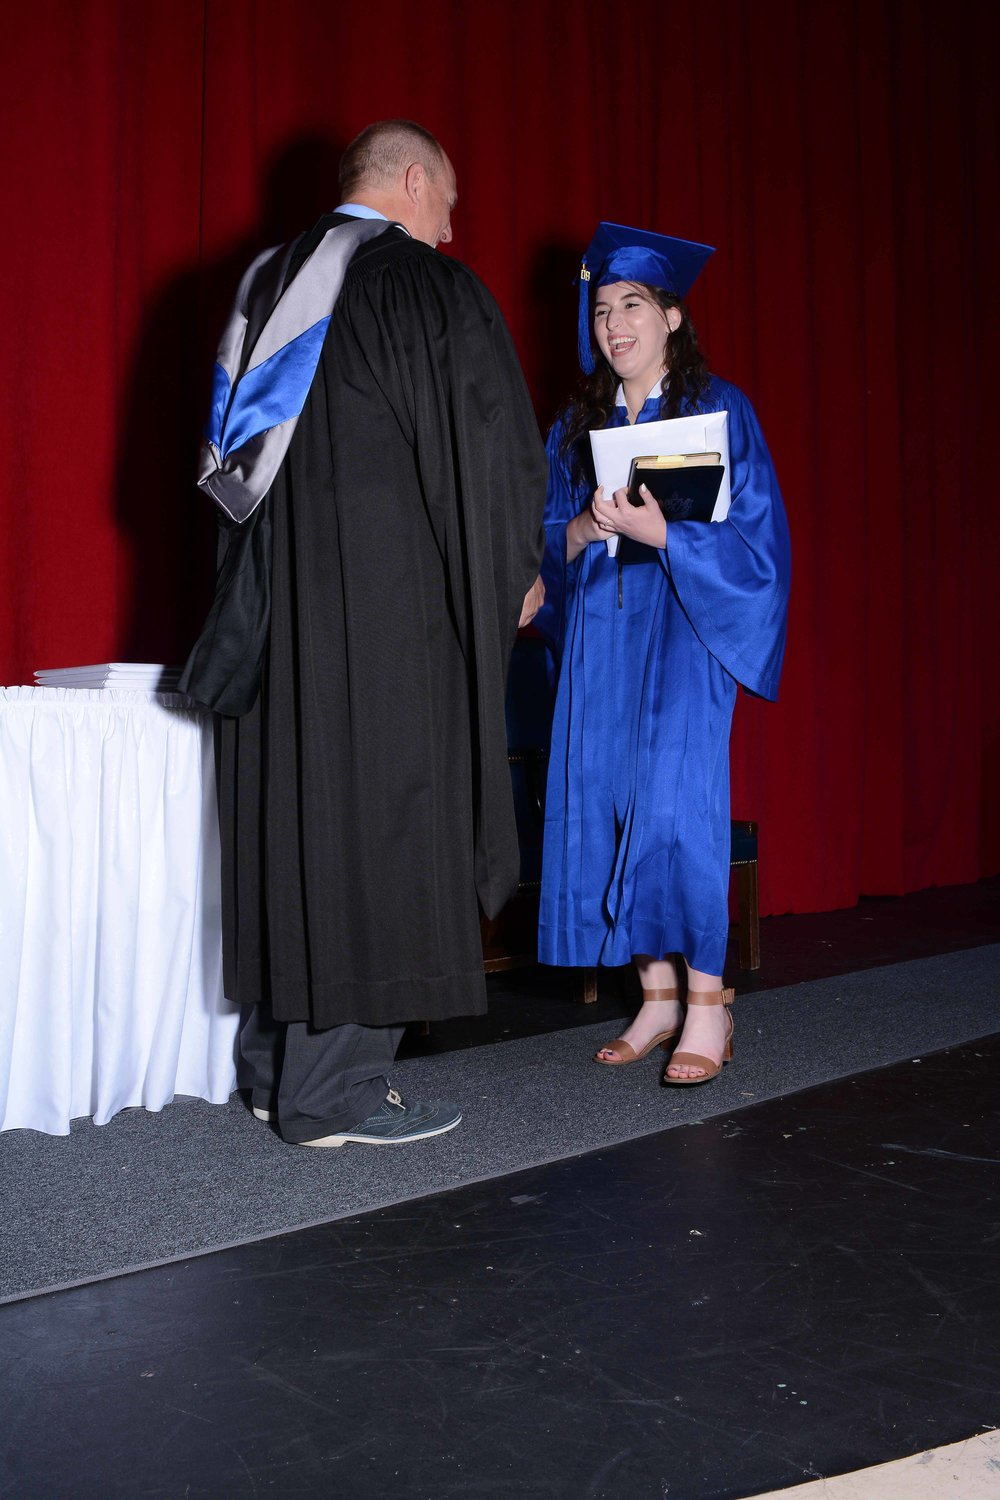 May14 Commencement175.jpg